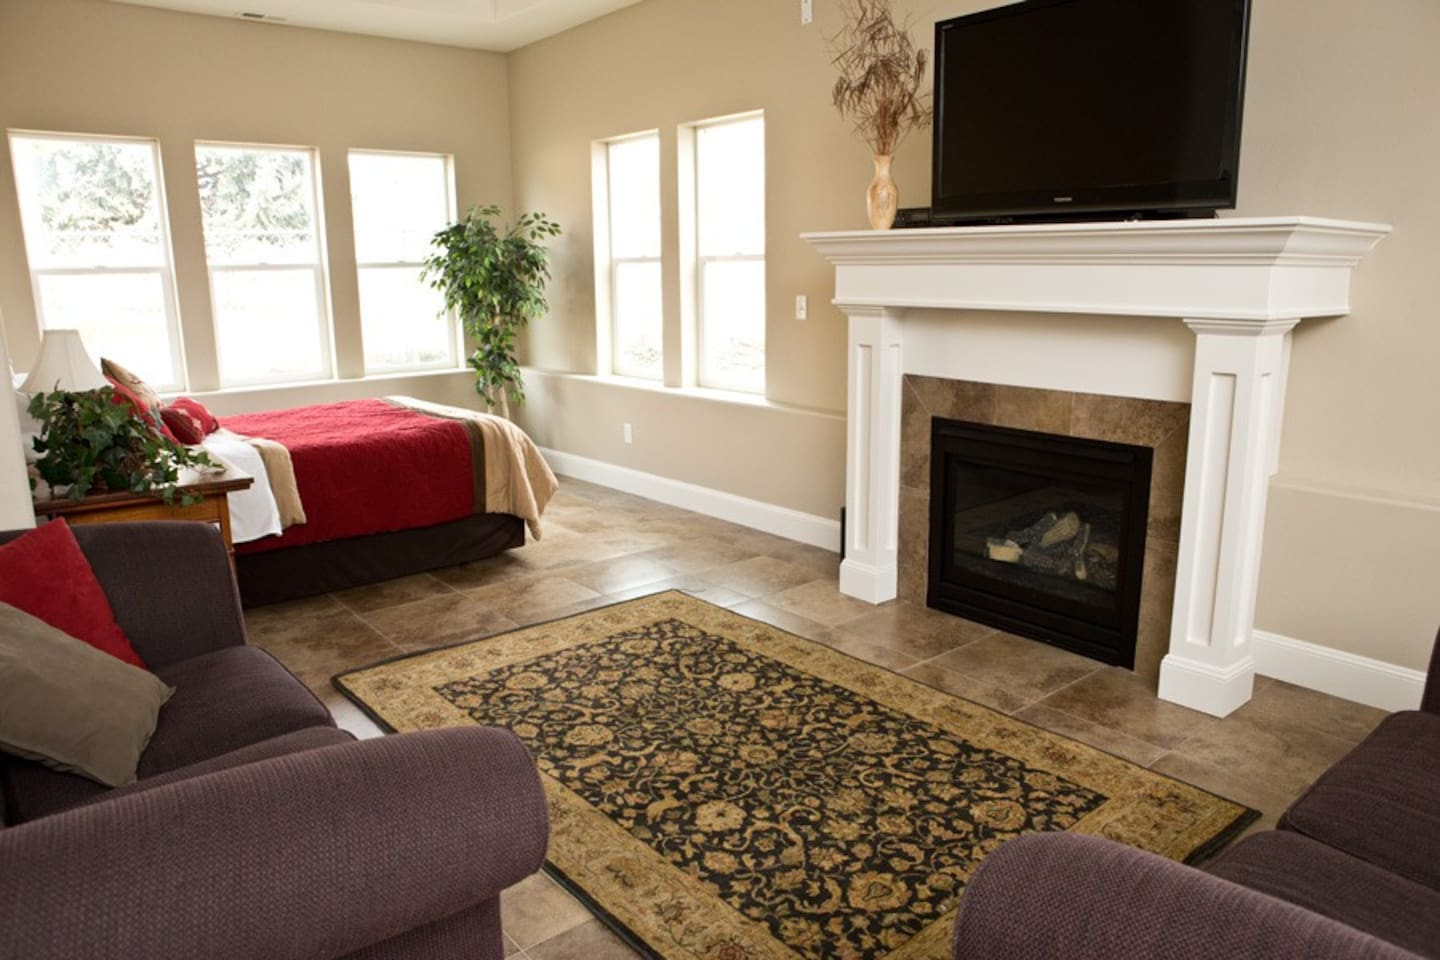 Bright and spacious main room with gas fireplace.